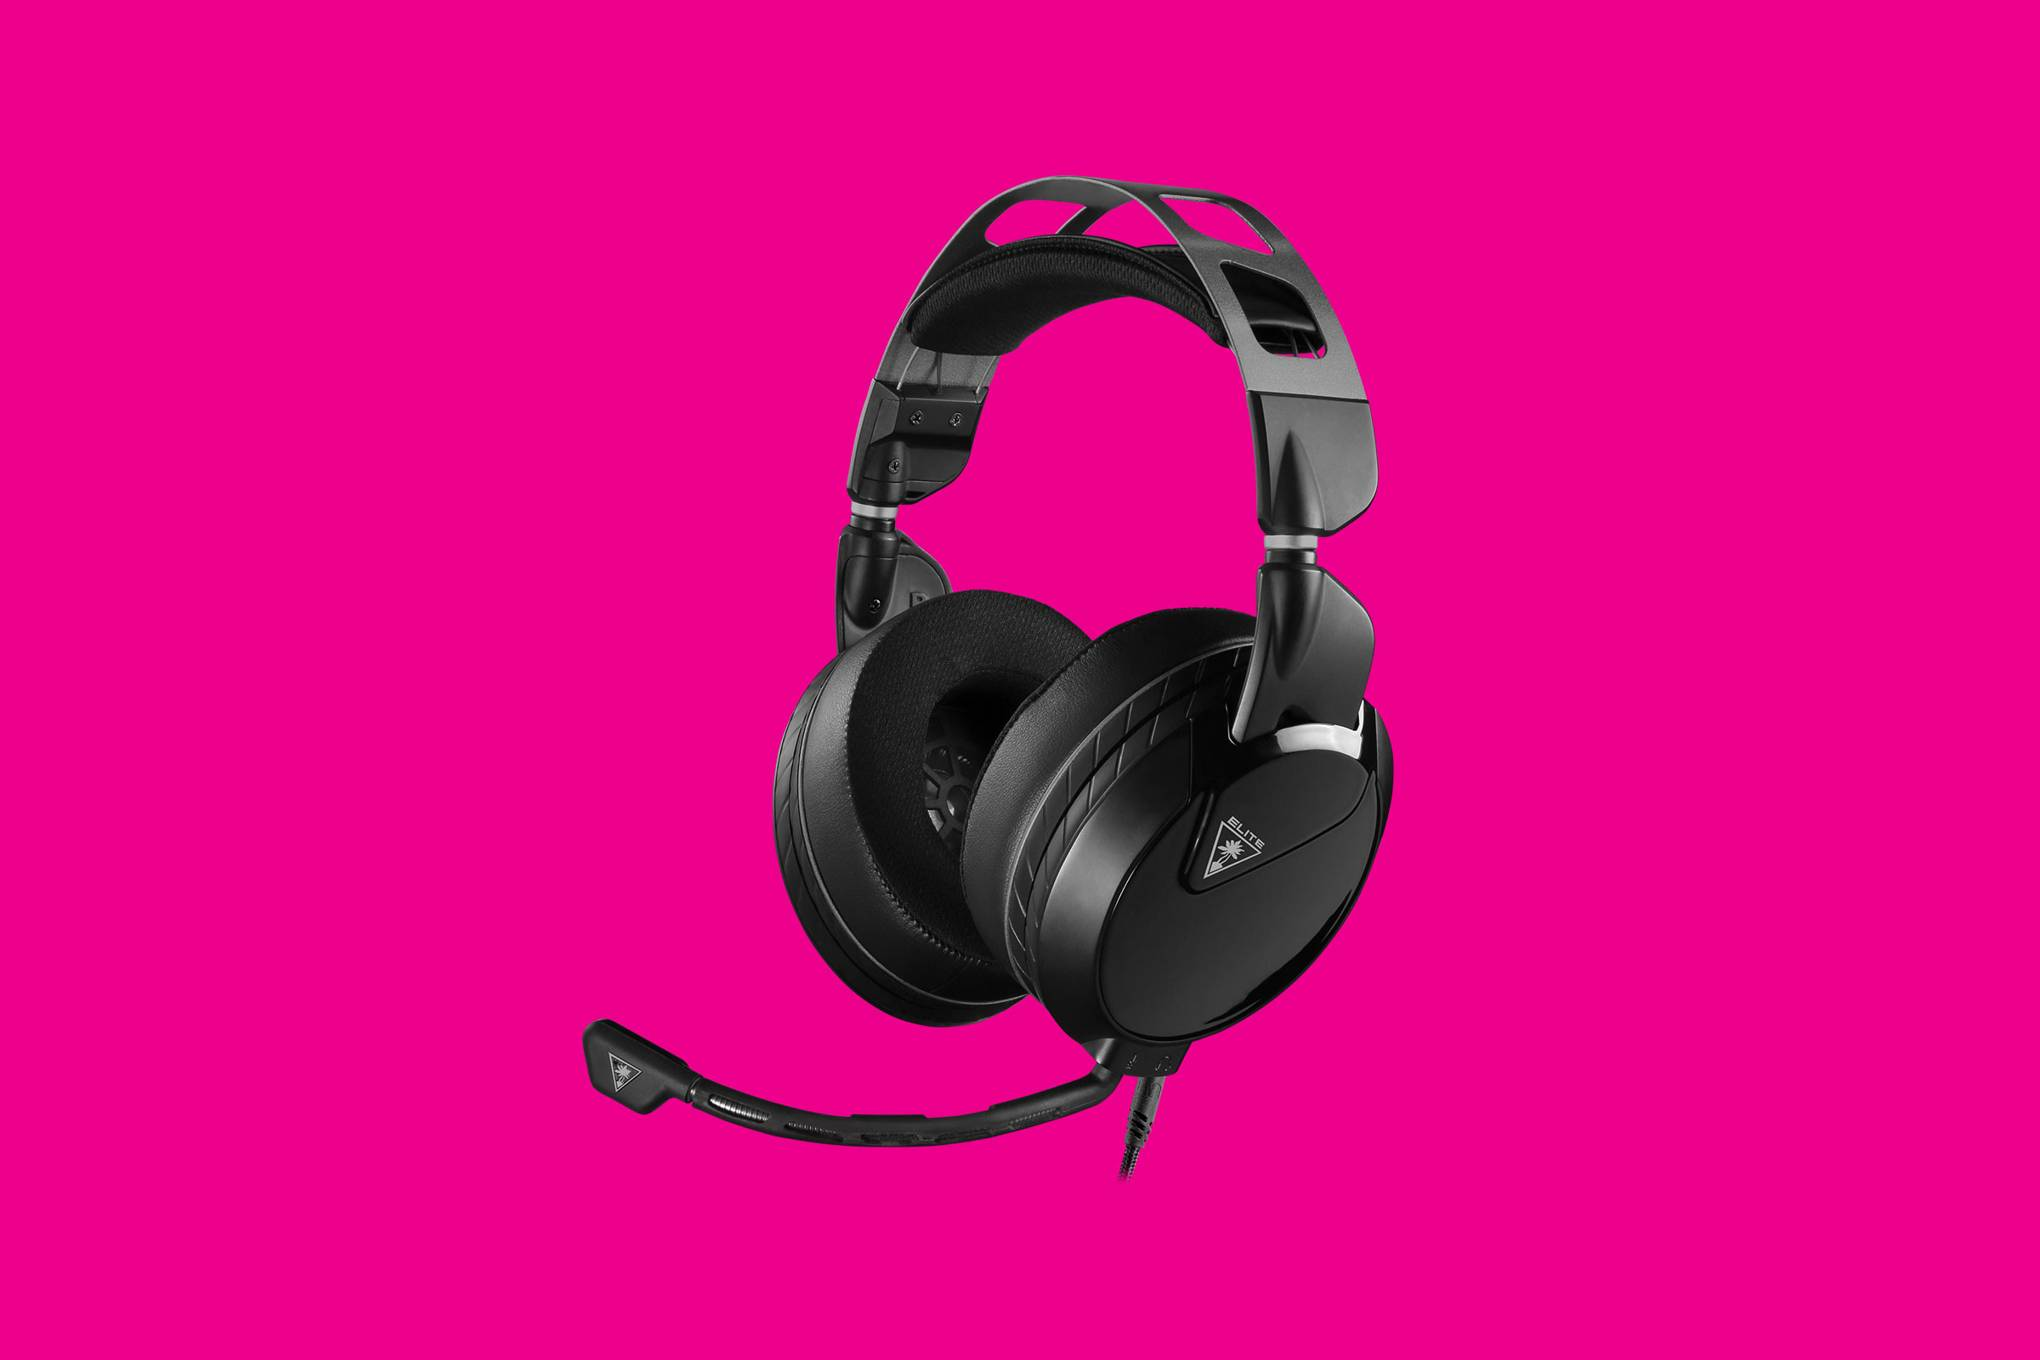 a13025bfa99 The best gaming headsets for PS4, Xbox One and PC in 2019 | WIRED UK